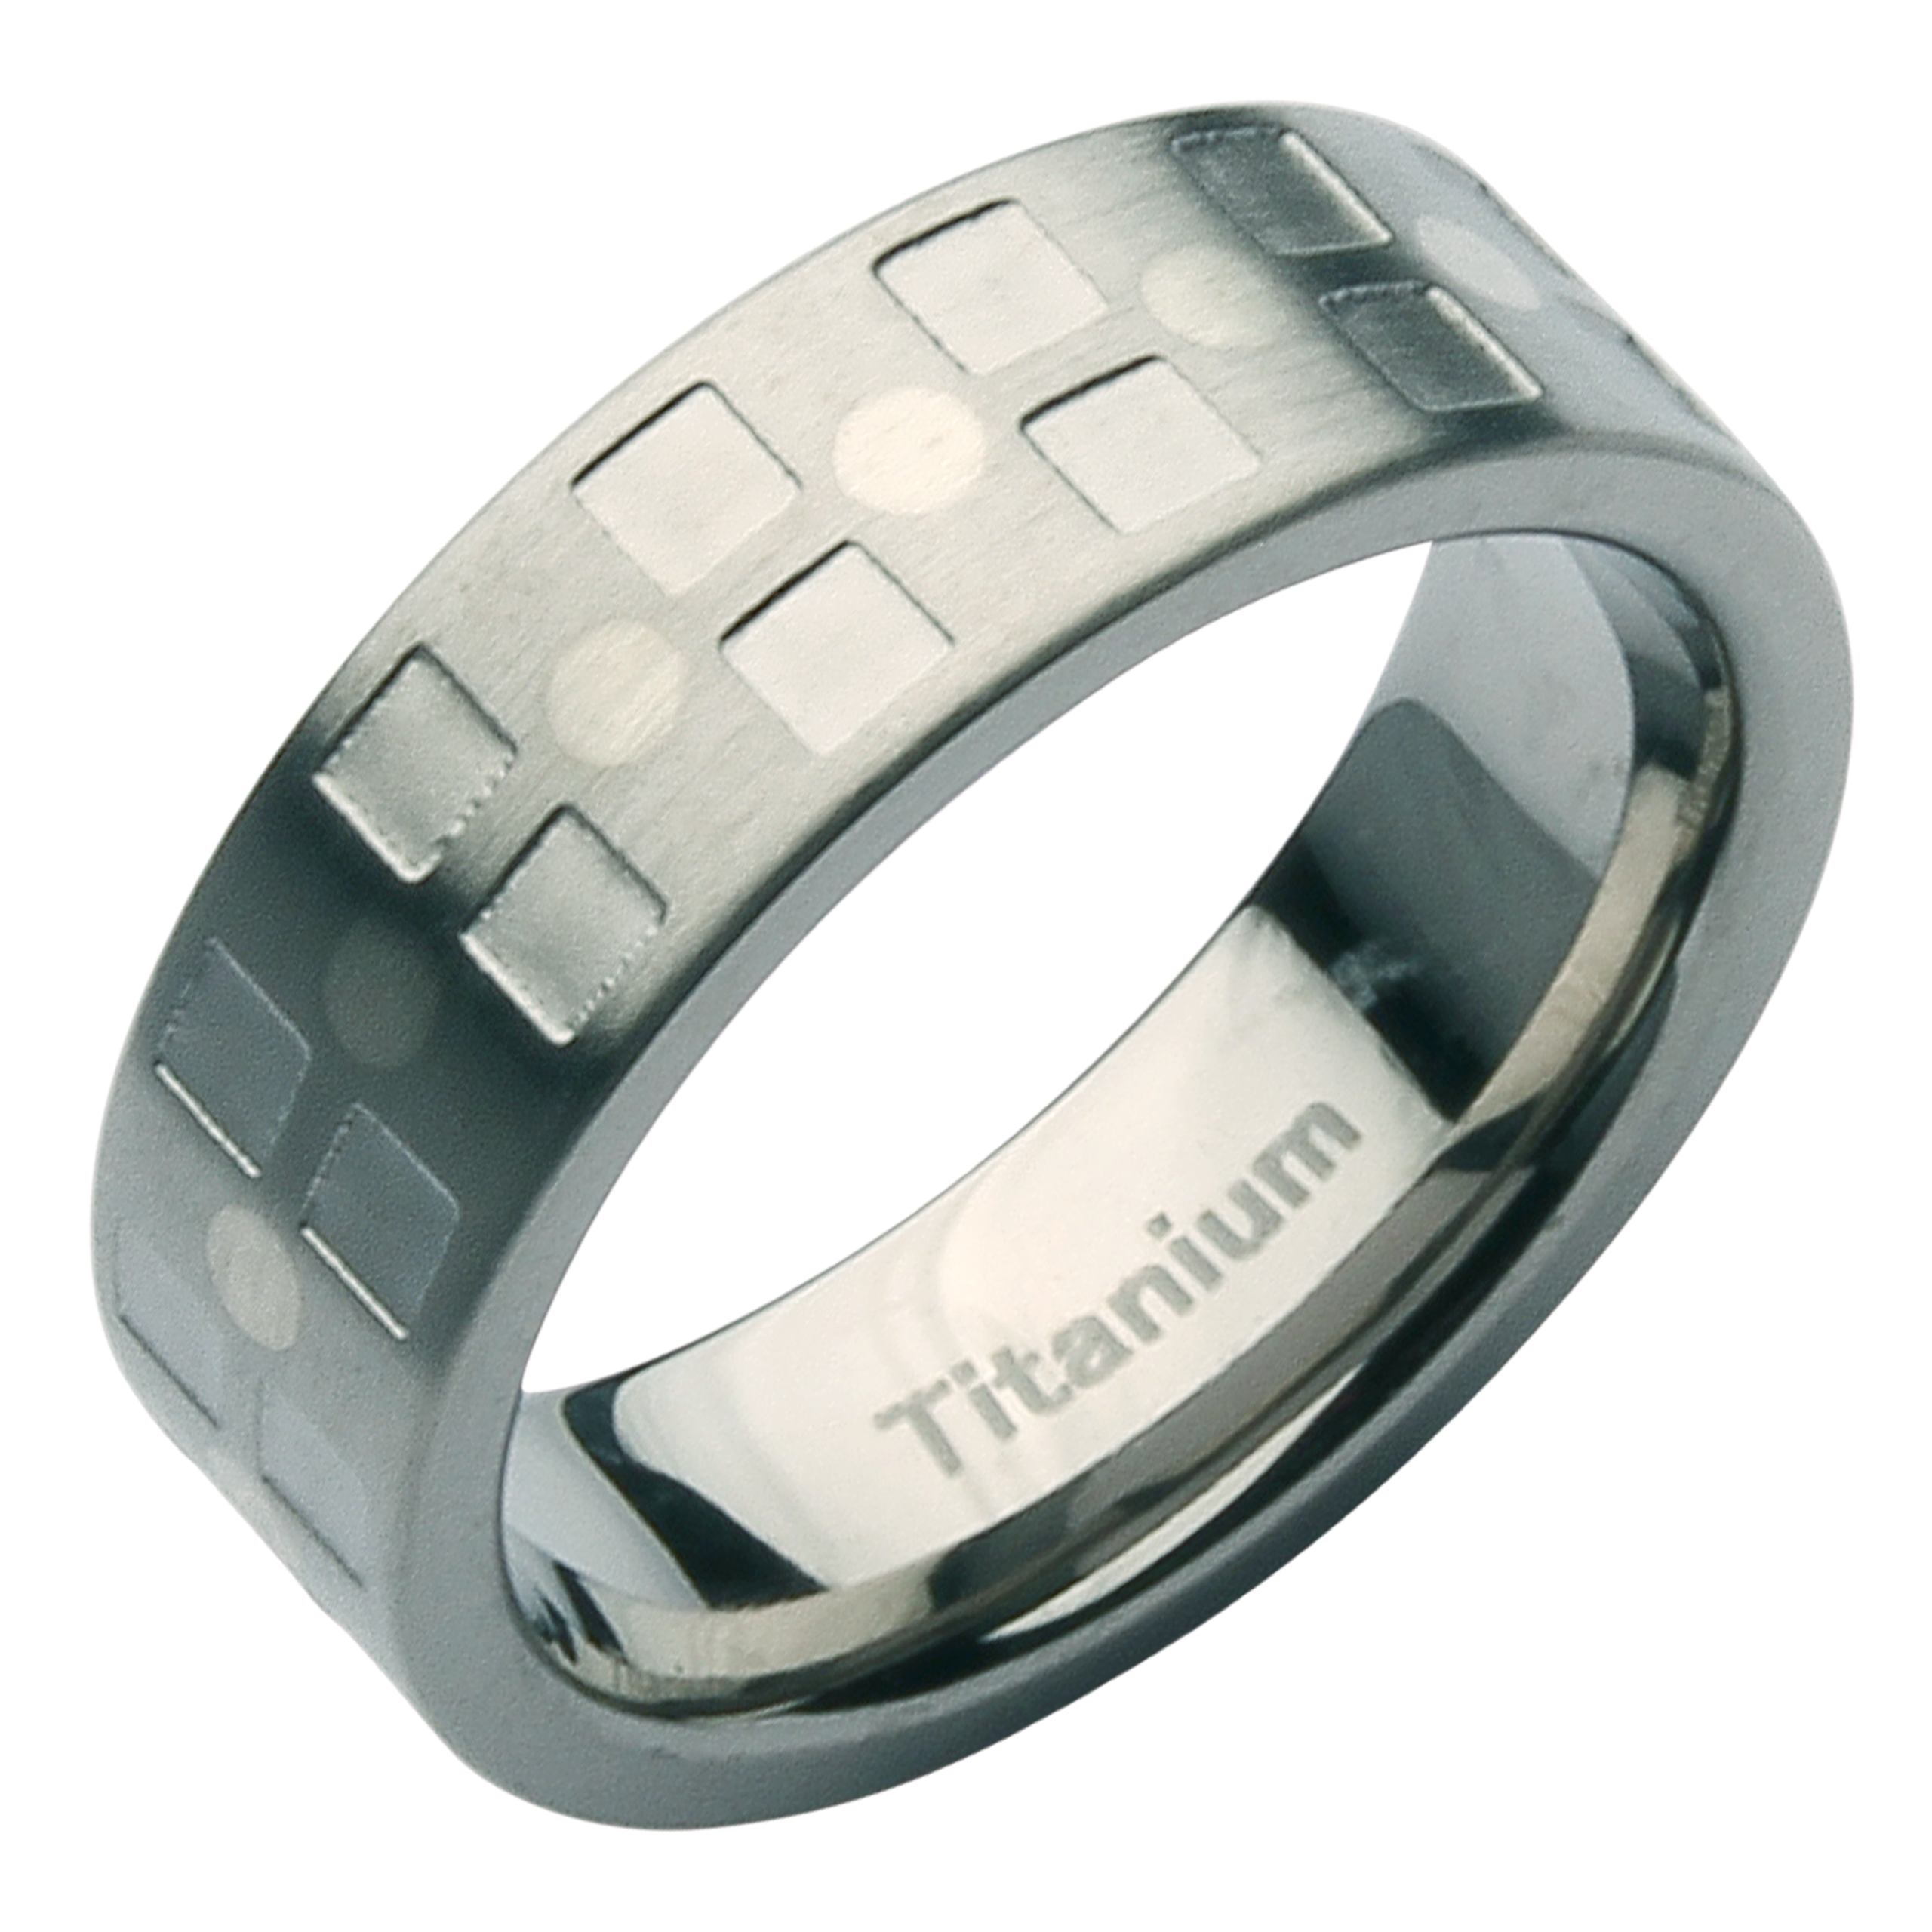 ring in aurum classic shop bands jewellery norwich ten products patterned b diamond rings wedding index stone